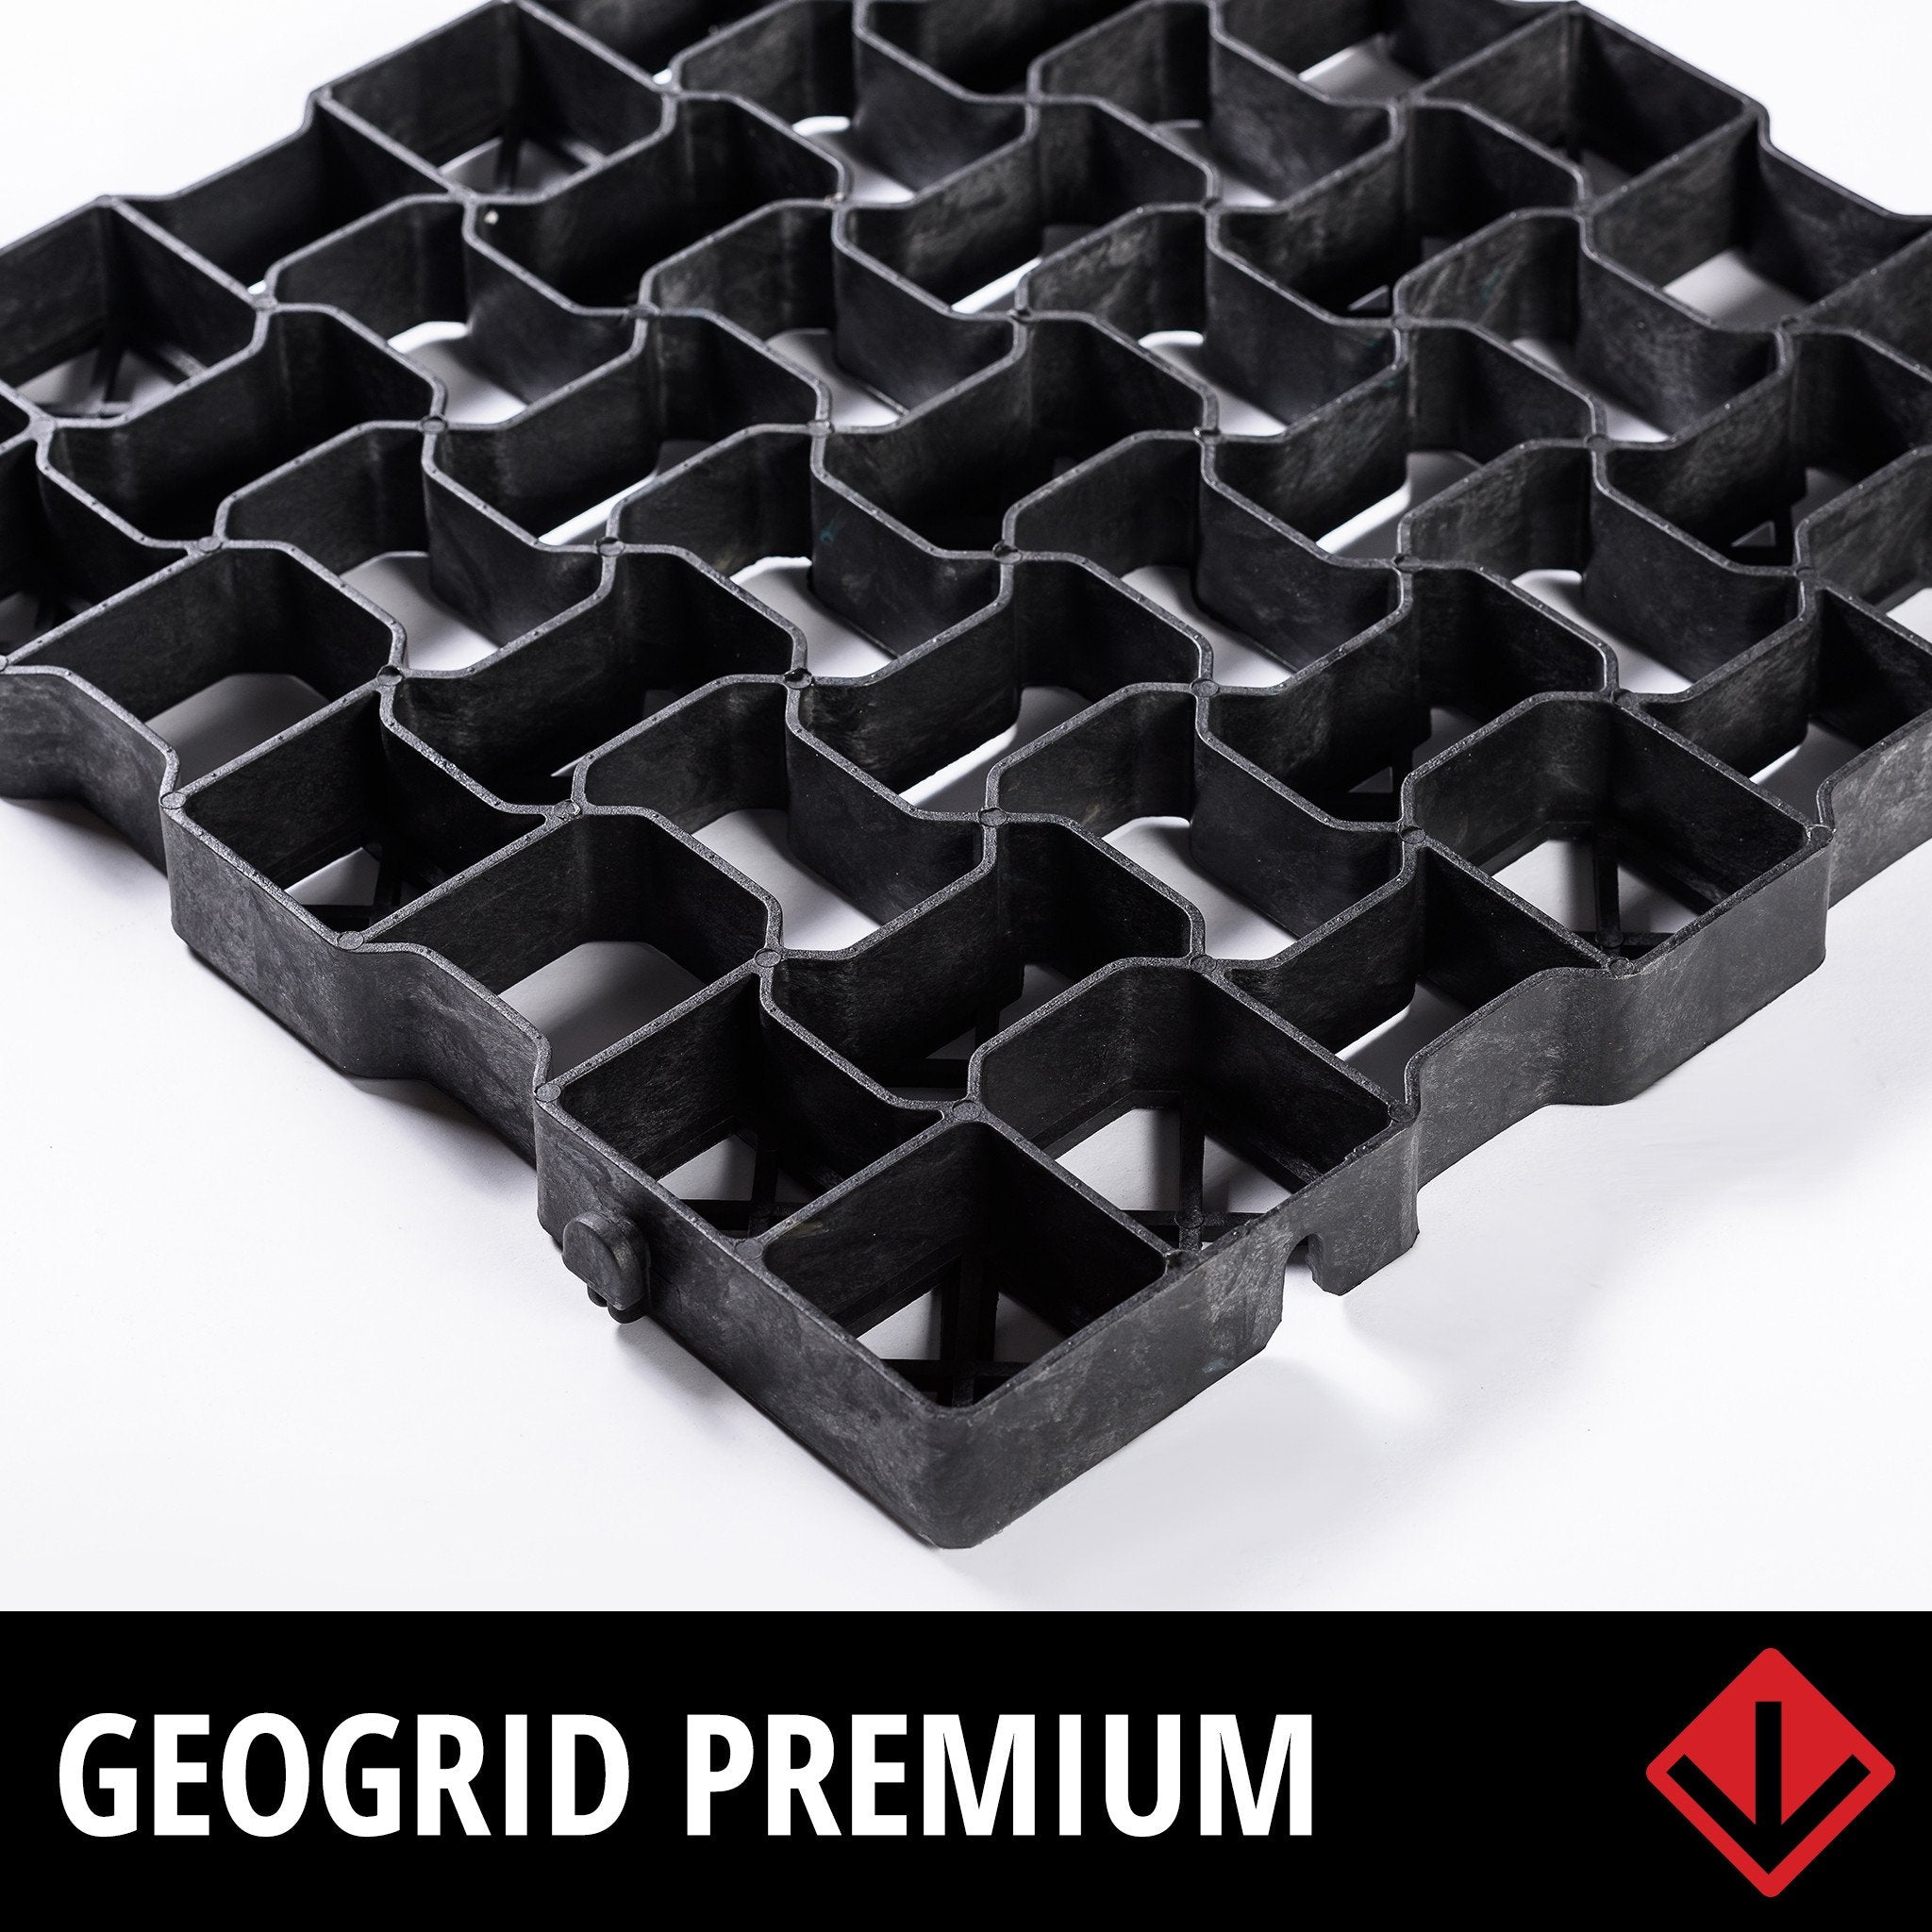 6x6 Greenhouse Foundation Pack Greater Flexibility